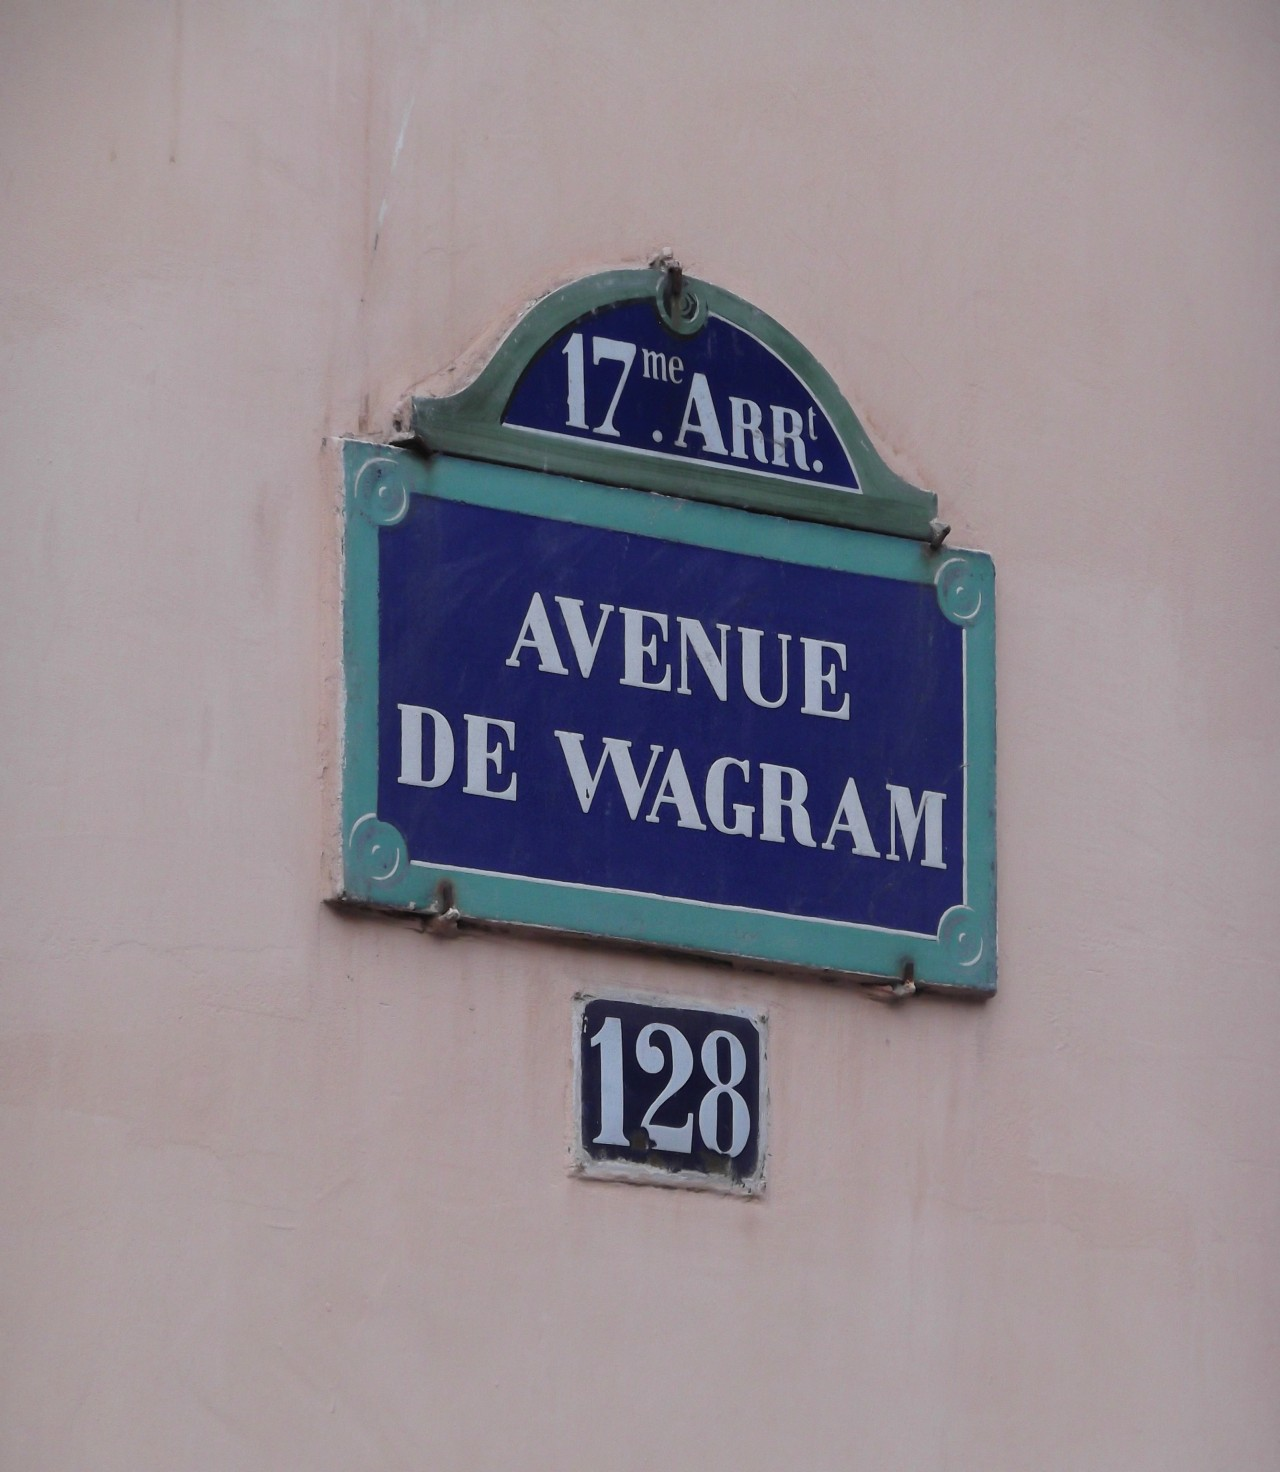 Letters: Paris Street Signs.